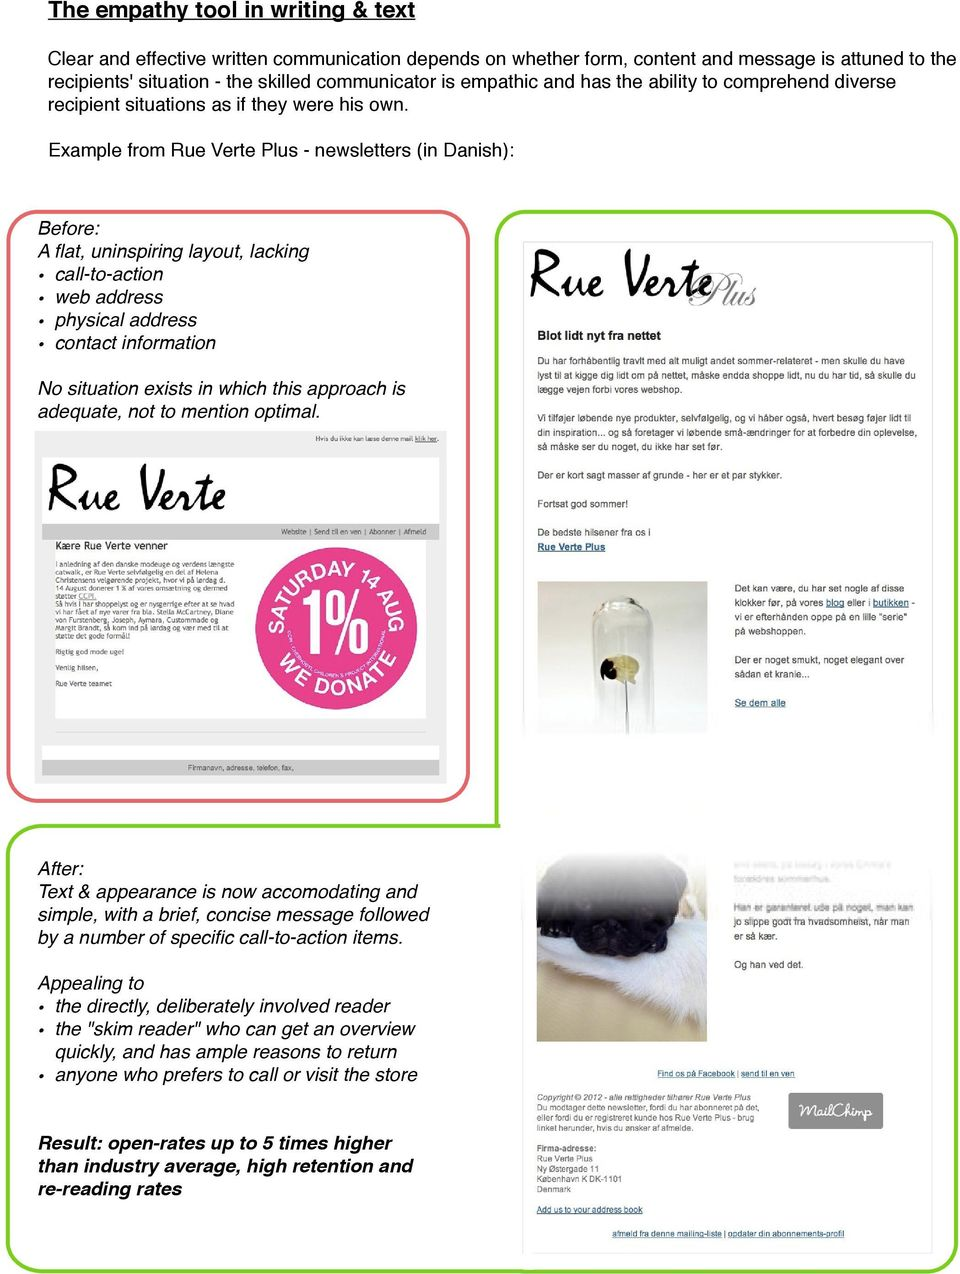 Example from Rue Verte Plus - newsletters (in Danish): Before: A flat, uninspiring layout, lacking call-to-action web address physical address contact information No situation exists in which this